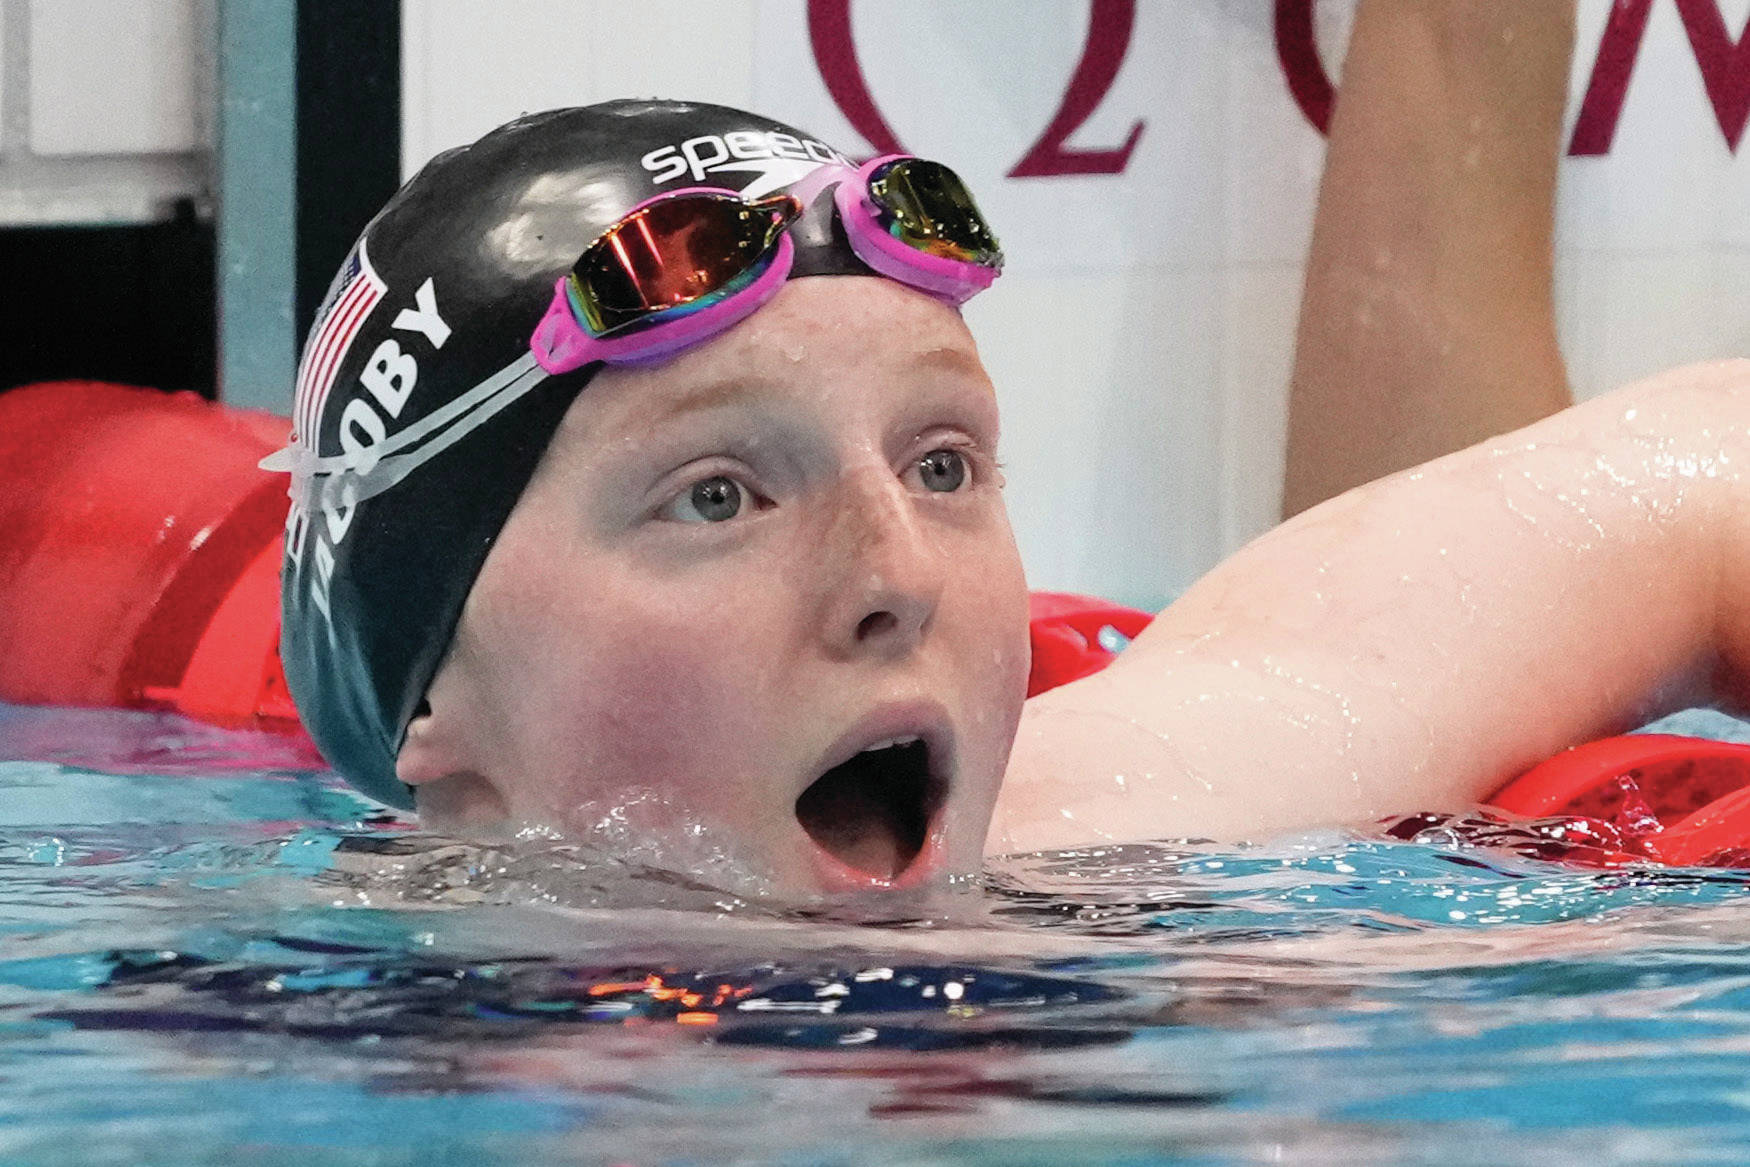 AP Photos / Petr David Josek Lydia Jacoby, of the United States, reacts Tuesday after winning the final of the women's 100-meter breaststroke at the 2020 Summer Olympics in Tokyo.